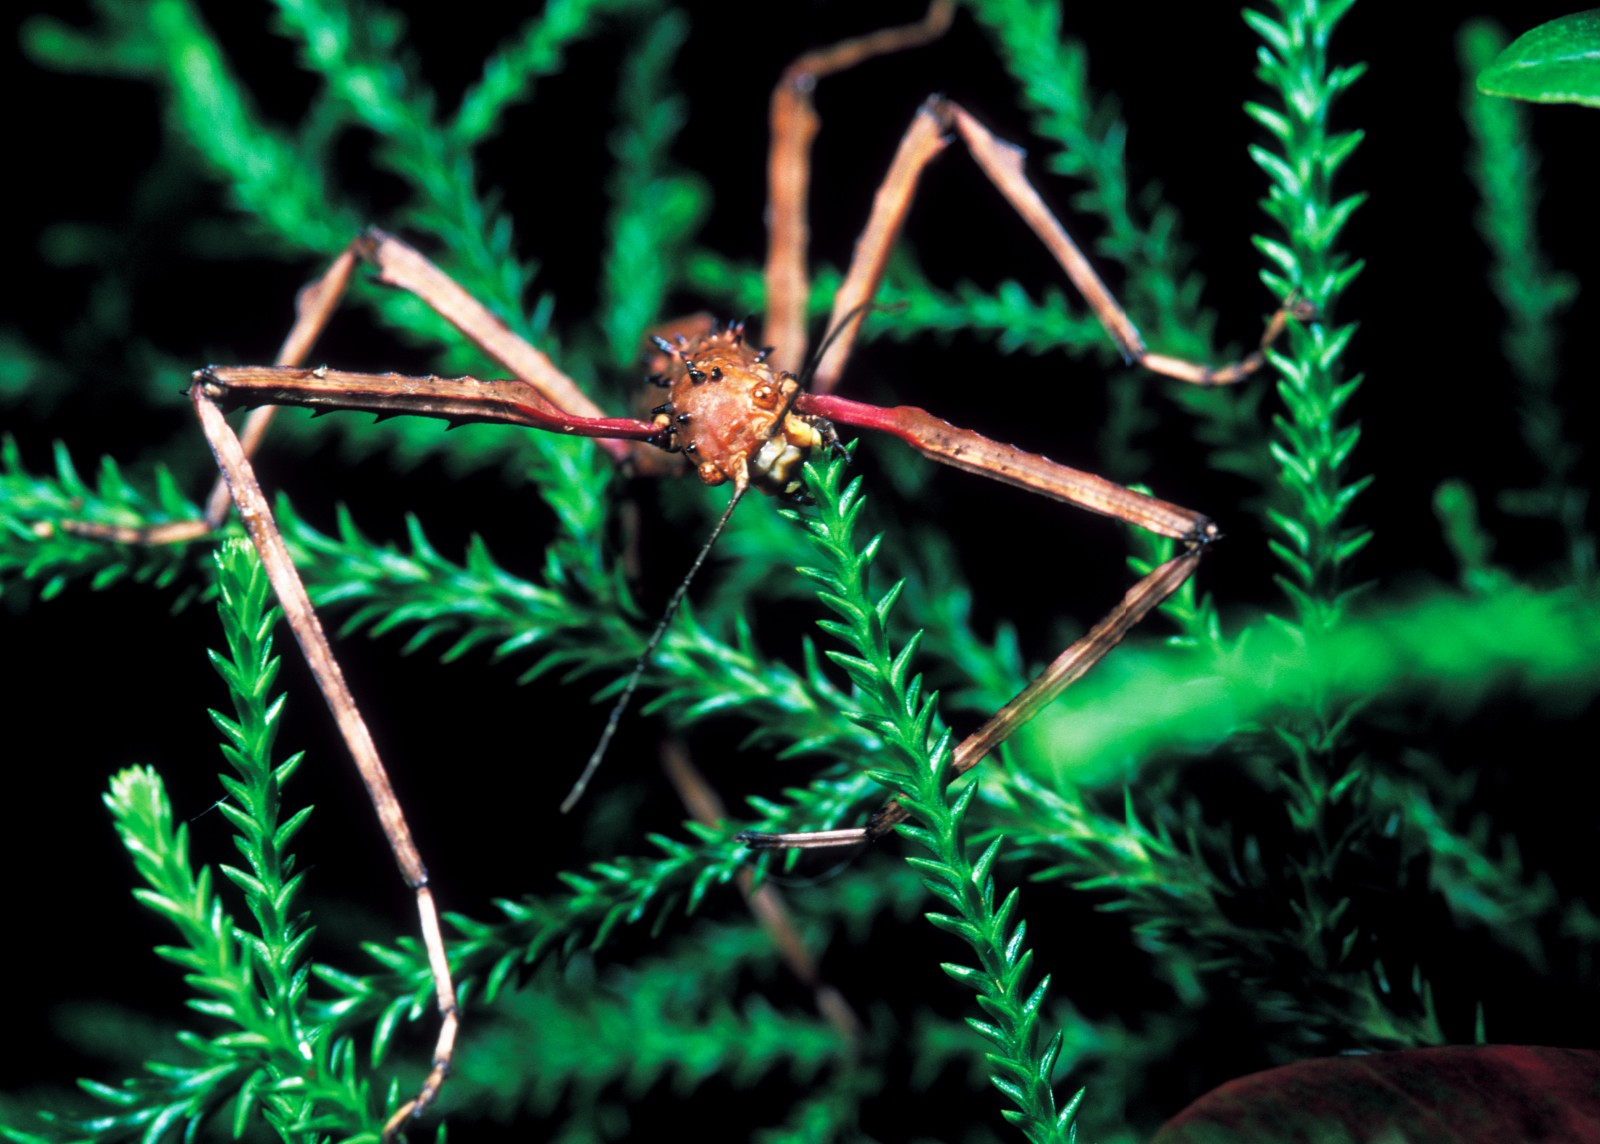 Stick insects are entirely vegetarian; however, some species are quite restricted in the range of plants they can eat, while others, such as the Acanthoxyla shown here, devour a broad range.